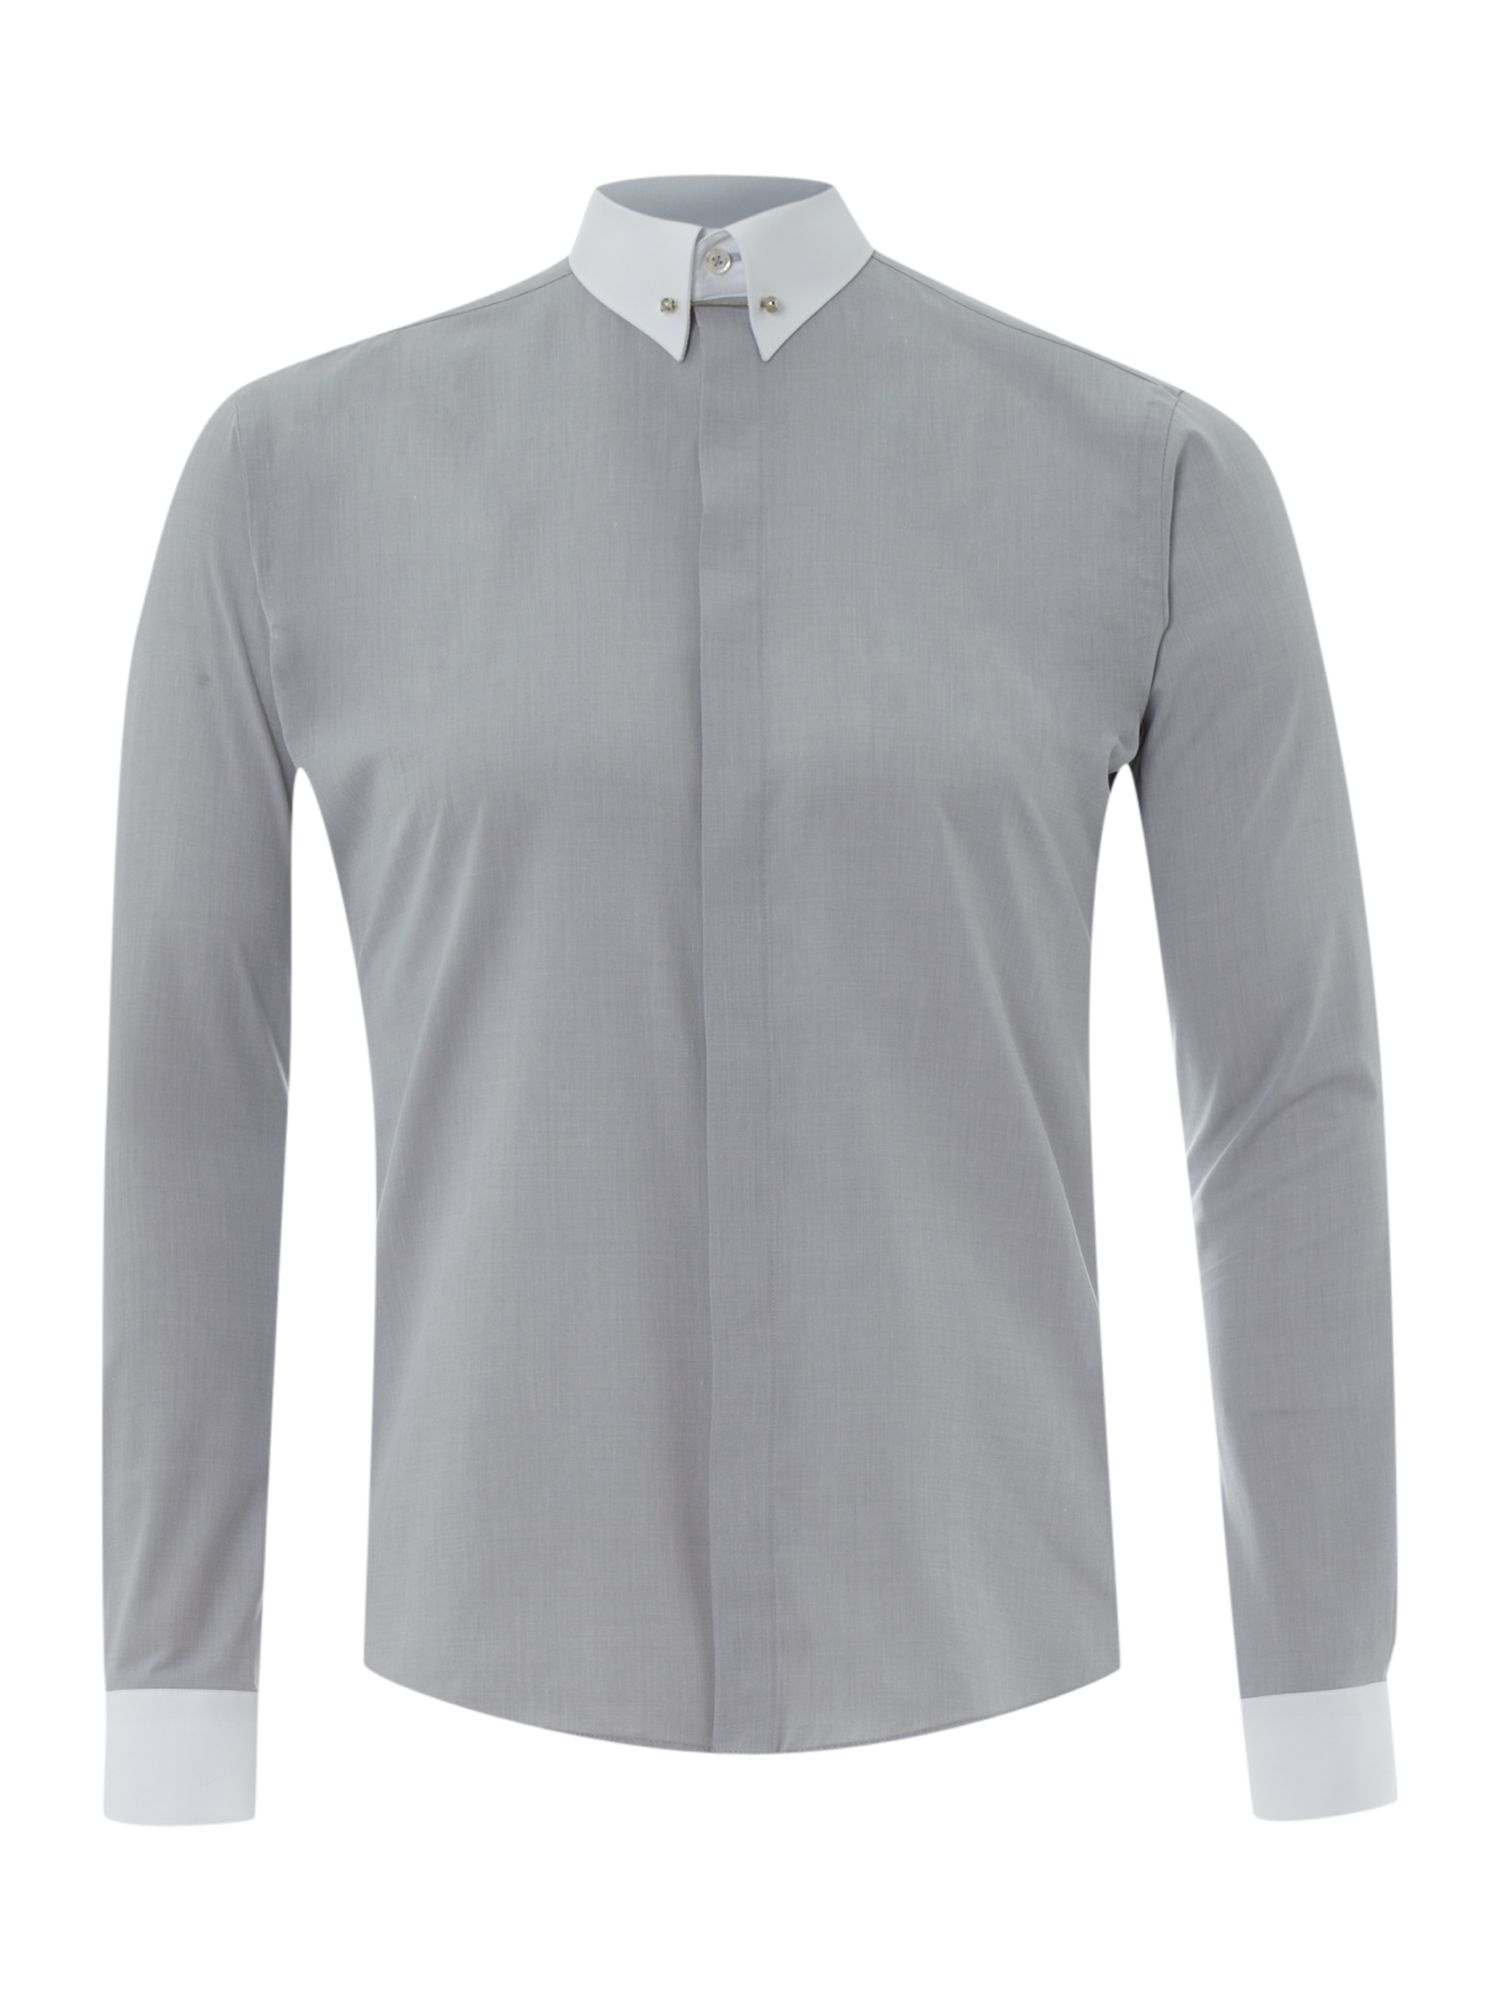 Remus uomo contrast pin collar and cuff shirt in gray for for Mens dress shirts with contrasting collars and cuffs